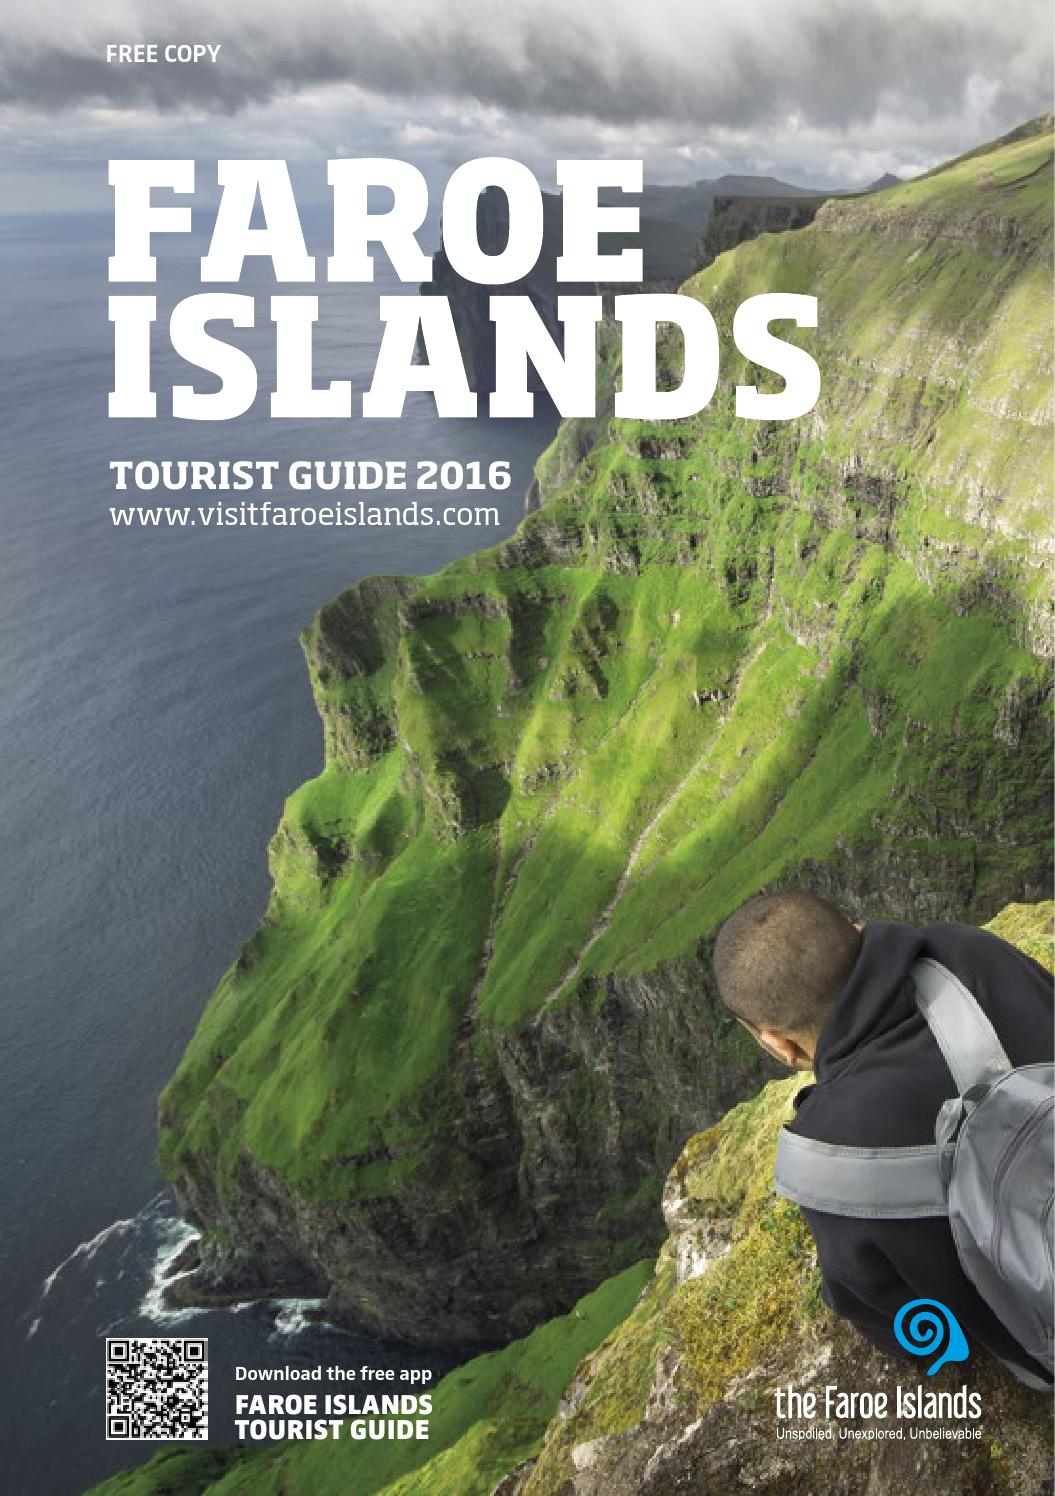 Faroe Islands Tourist Guide 2016 By Visit Faroe Islands Issuu